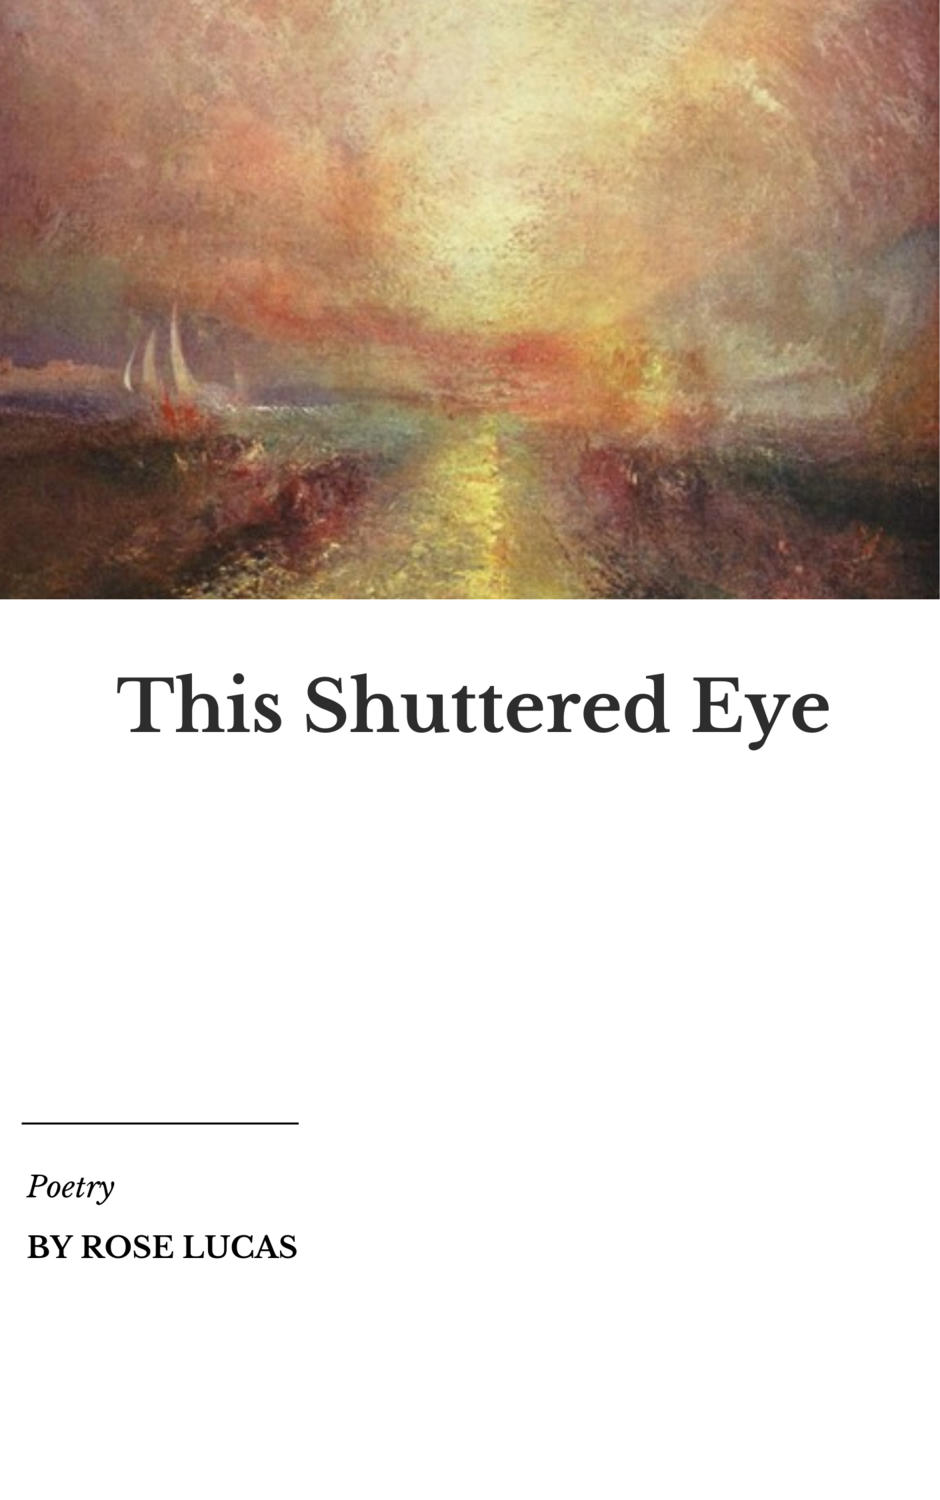 This Shuttered Eye - Rose Lucas